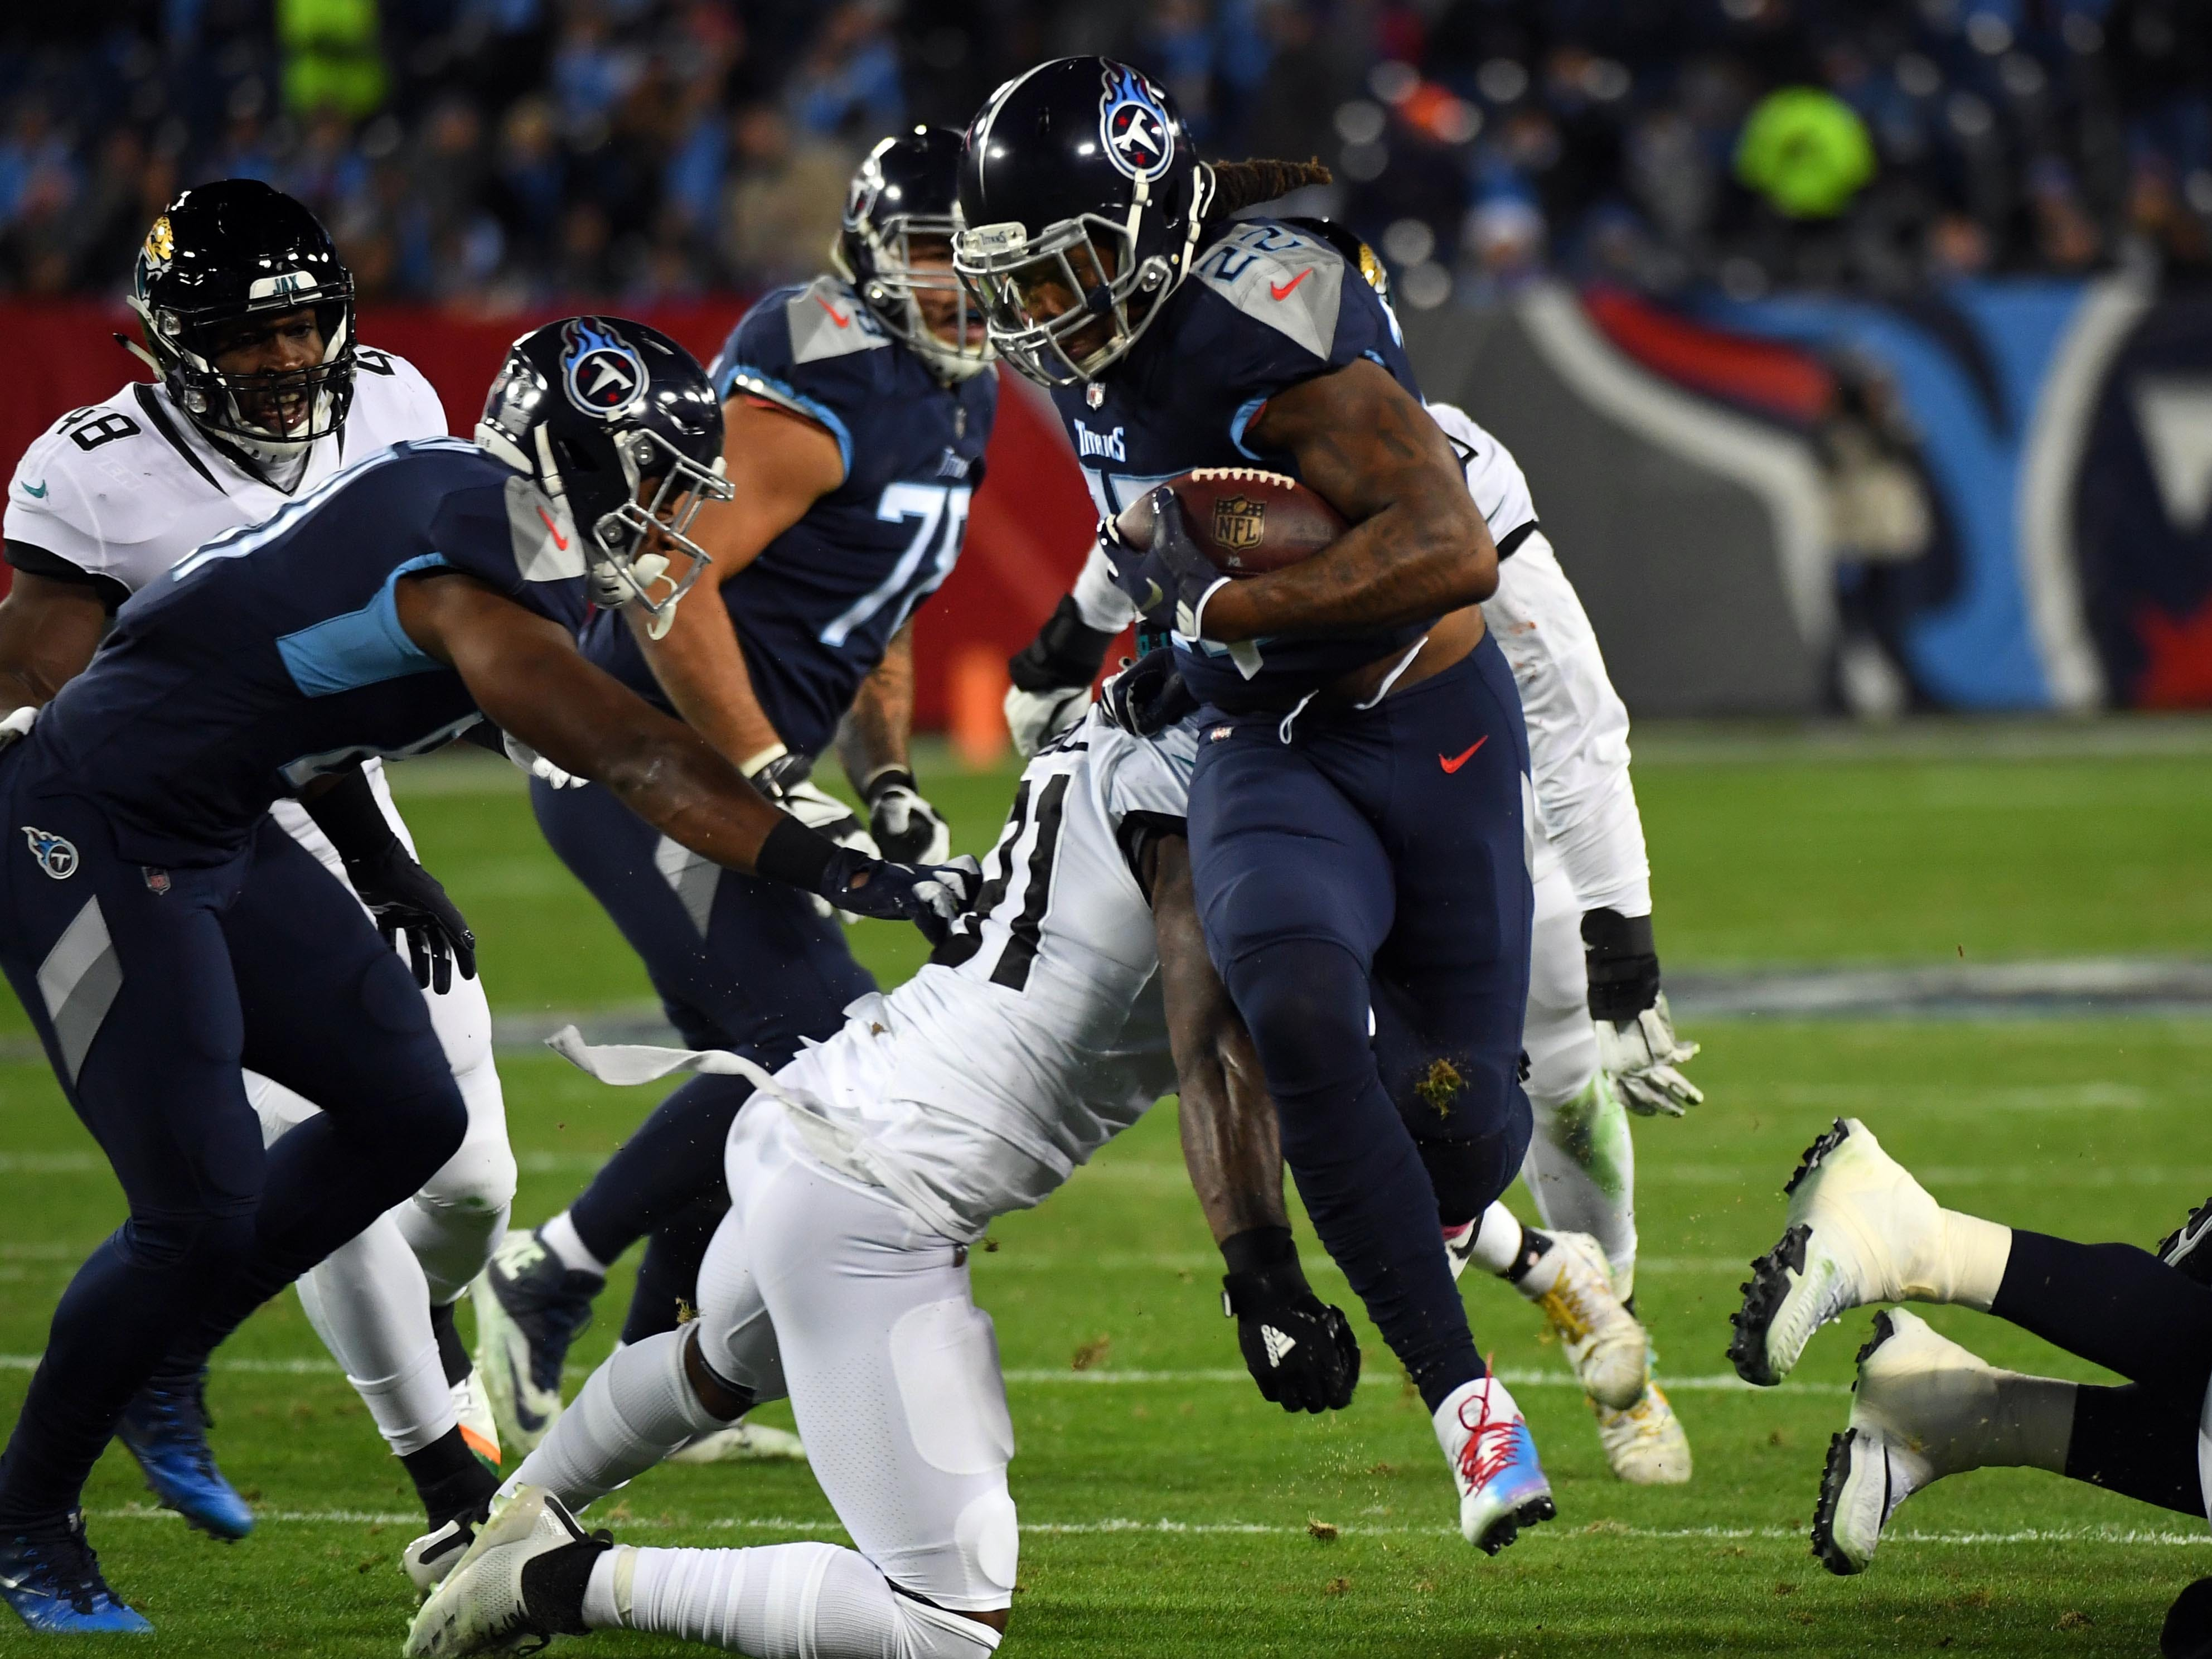 Tennessee Titans running back Derrick Henry runs for a short gain during the first half against the Jacksonville Jaguars at Nissan Stadium.